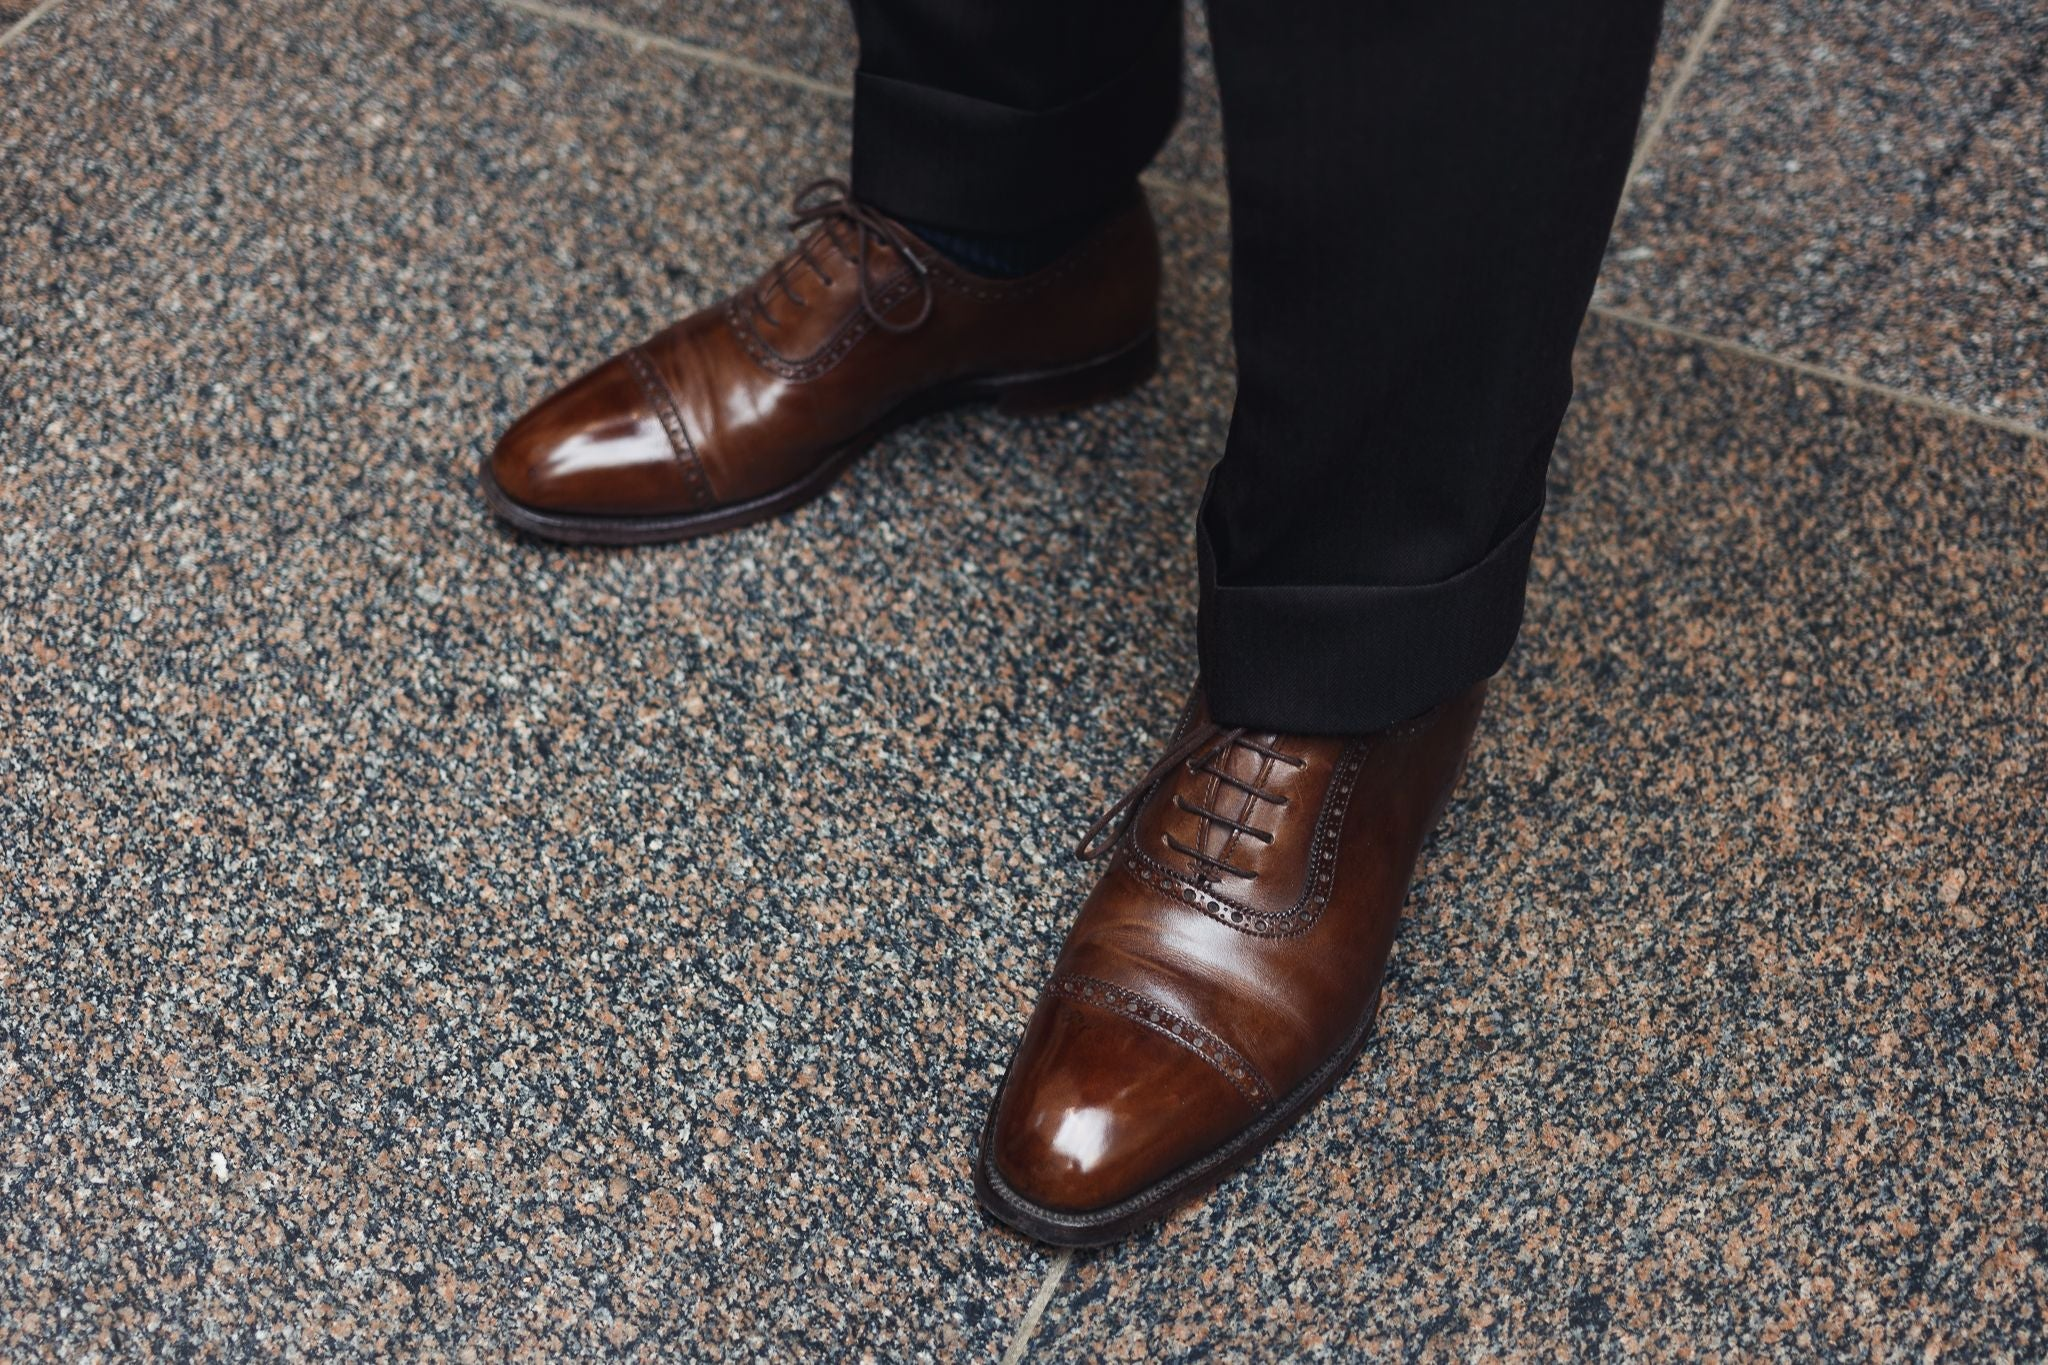 Brown business suit - brown calf leather oxfords with the suit.